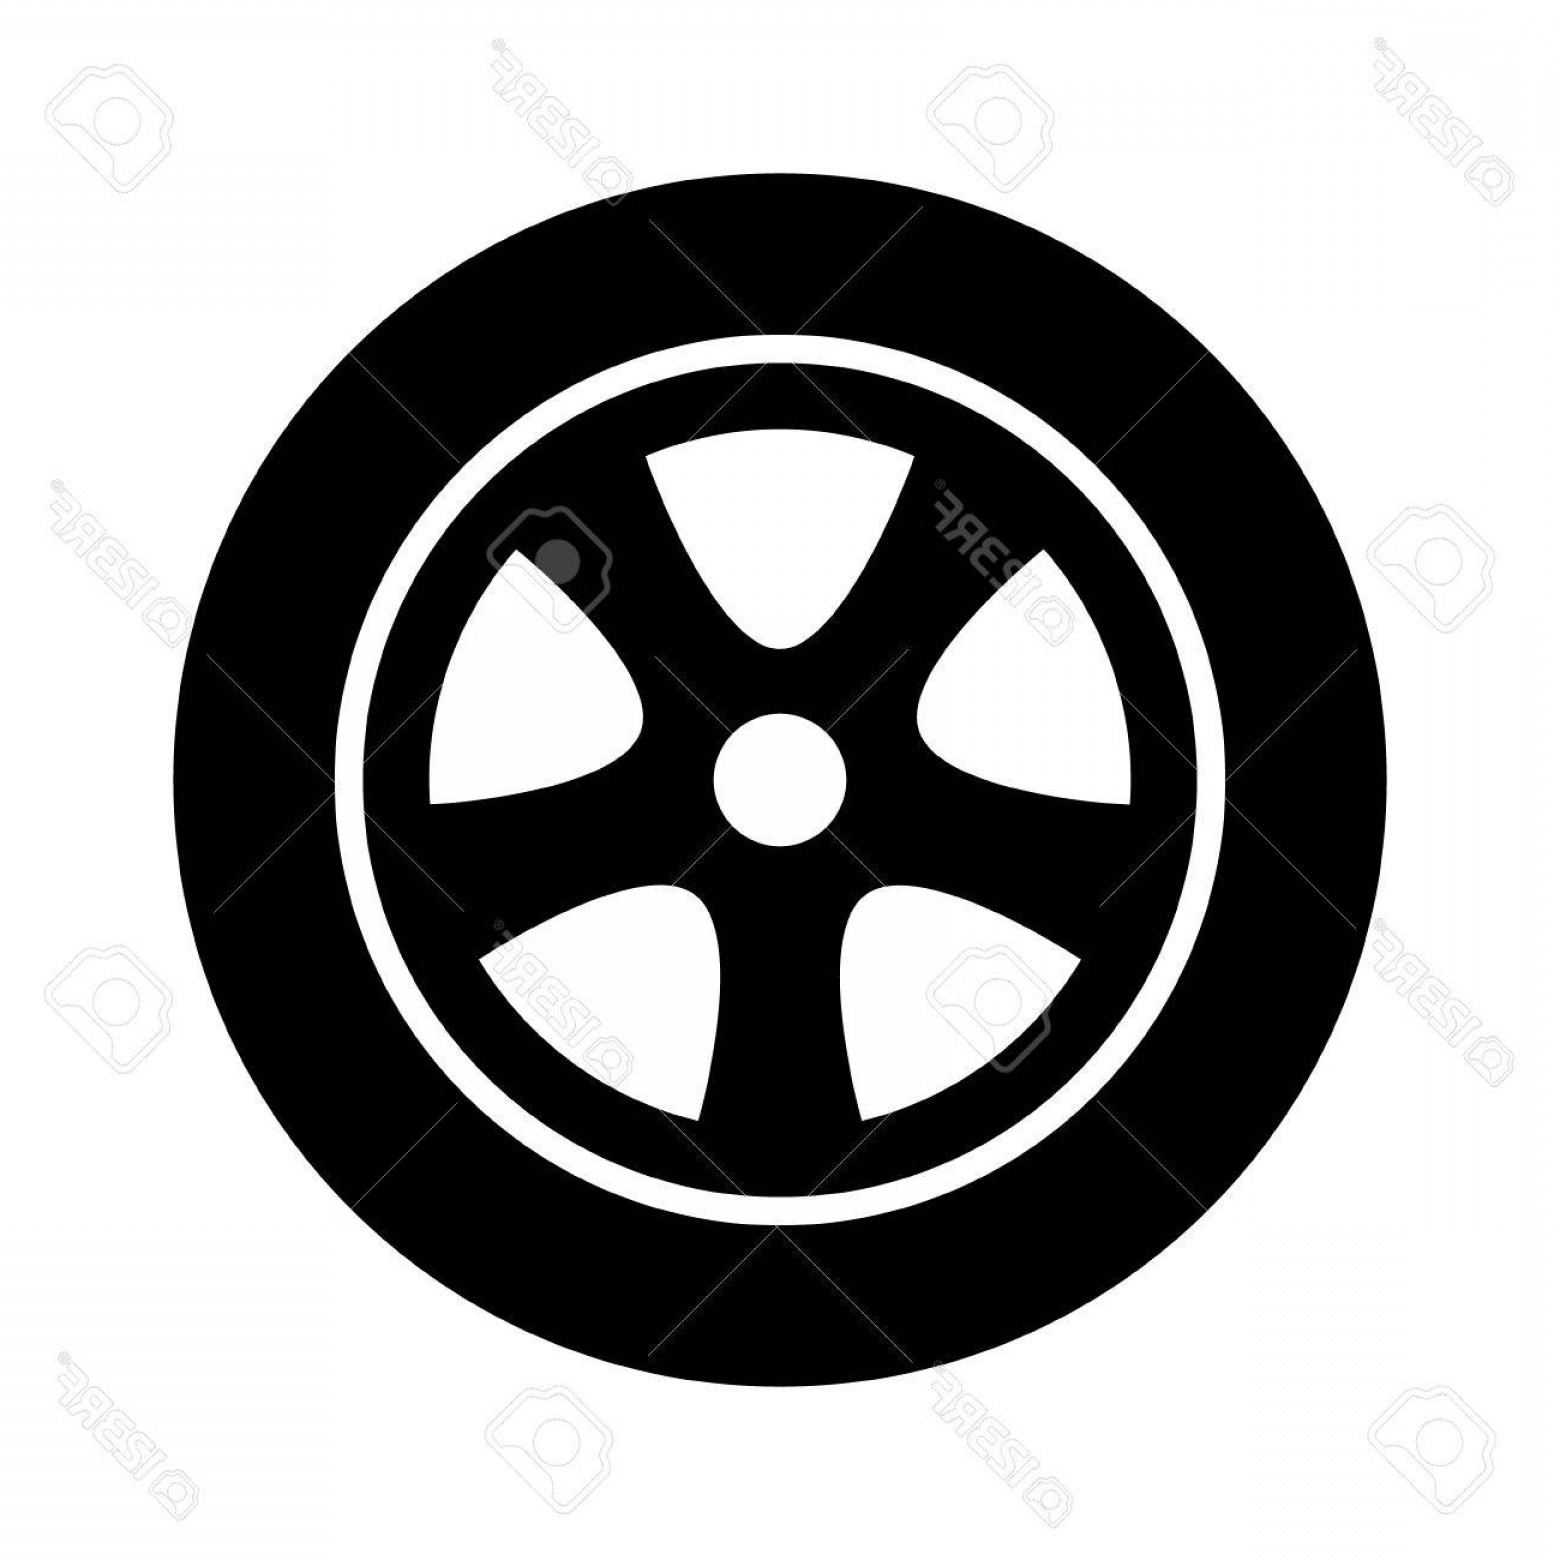 Tire Icon Vector: Photostock Vector Car Vehicle Or Automobile Tire Alloy Wheel With Rim Flat Vector Icon For Apps And Websites